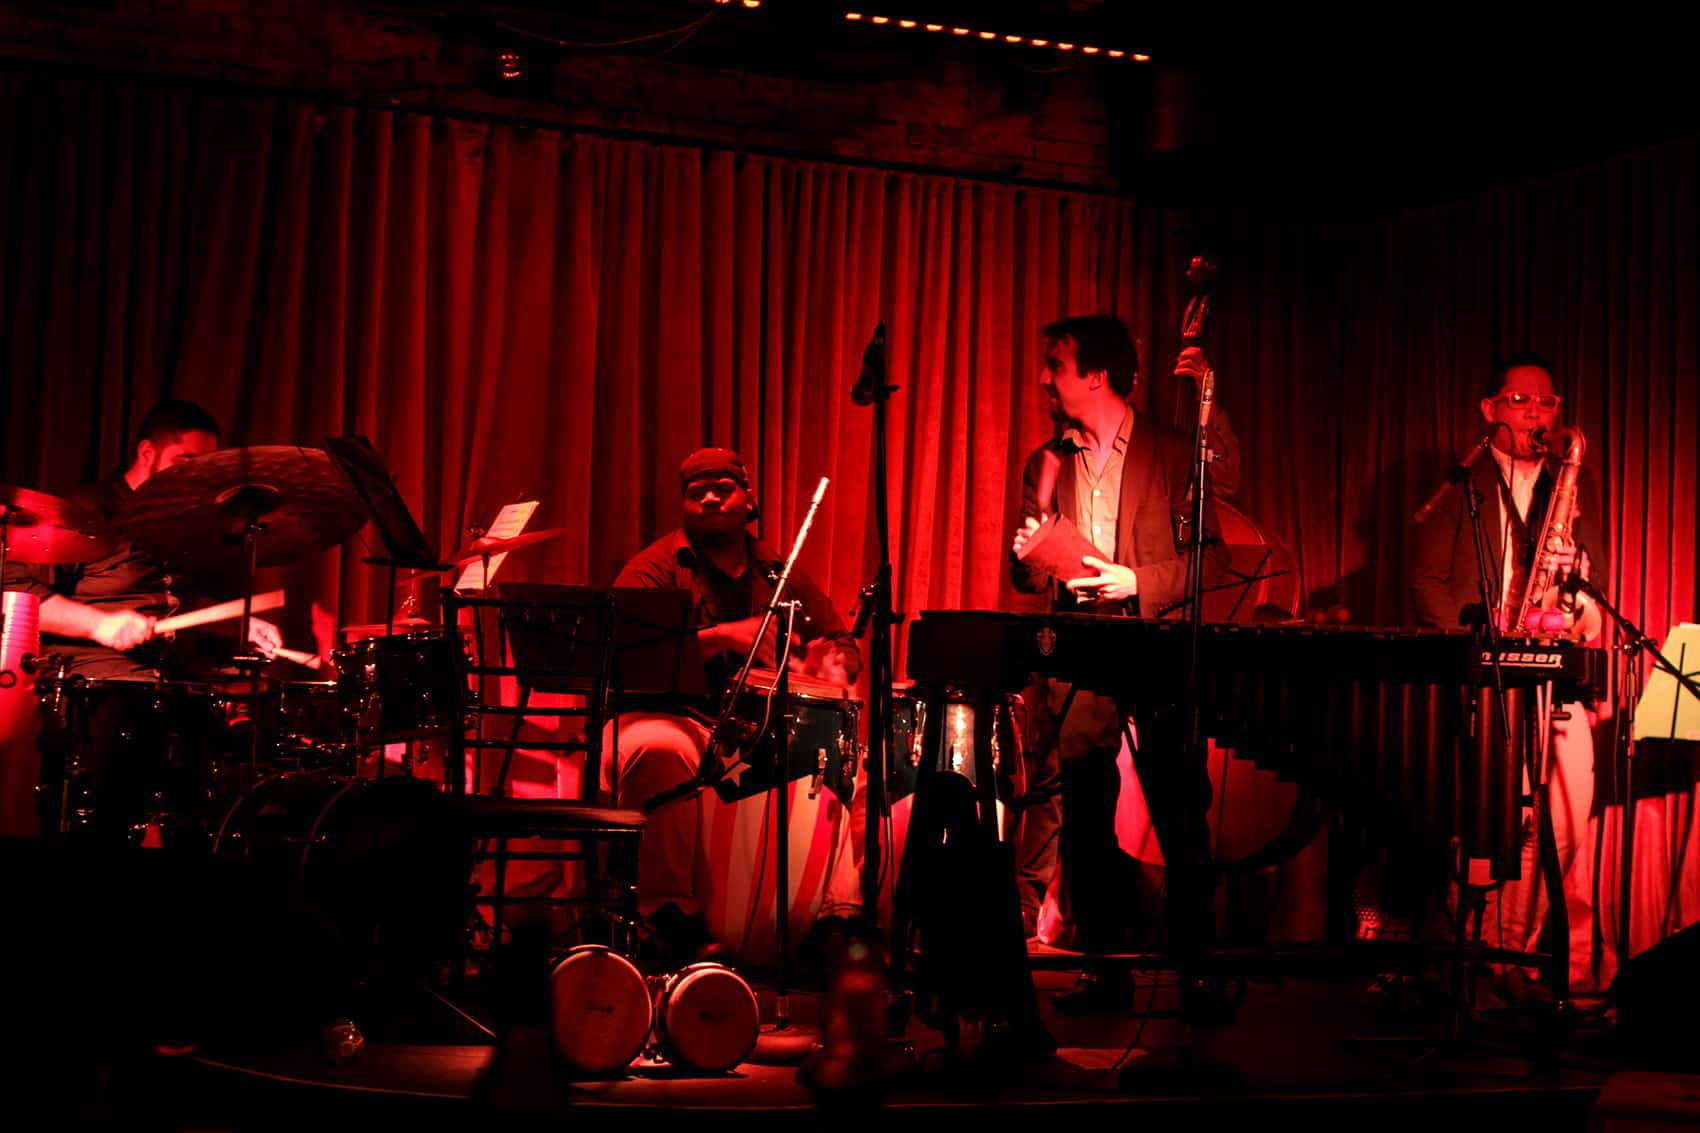 Super Mambo, a band created in 2014, performs on June 22 at the newly opened Latin jazz club Subrosa in Manhattan's fancy Meatpacking District.